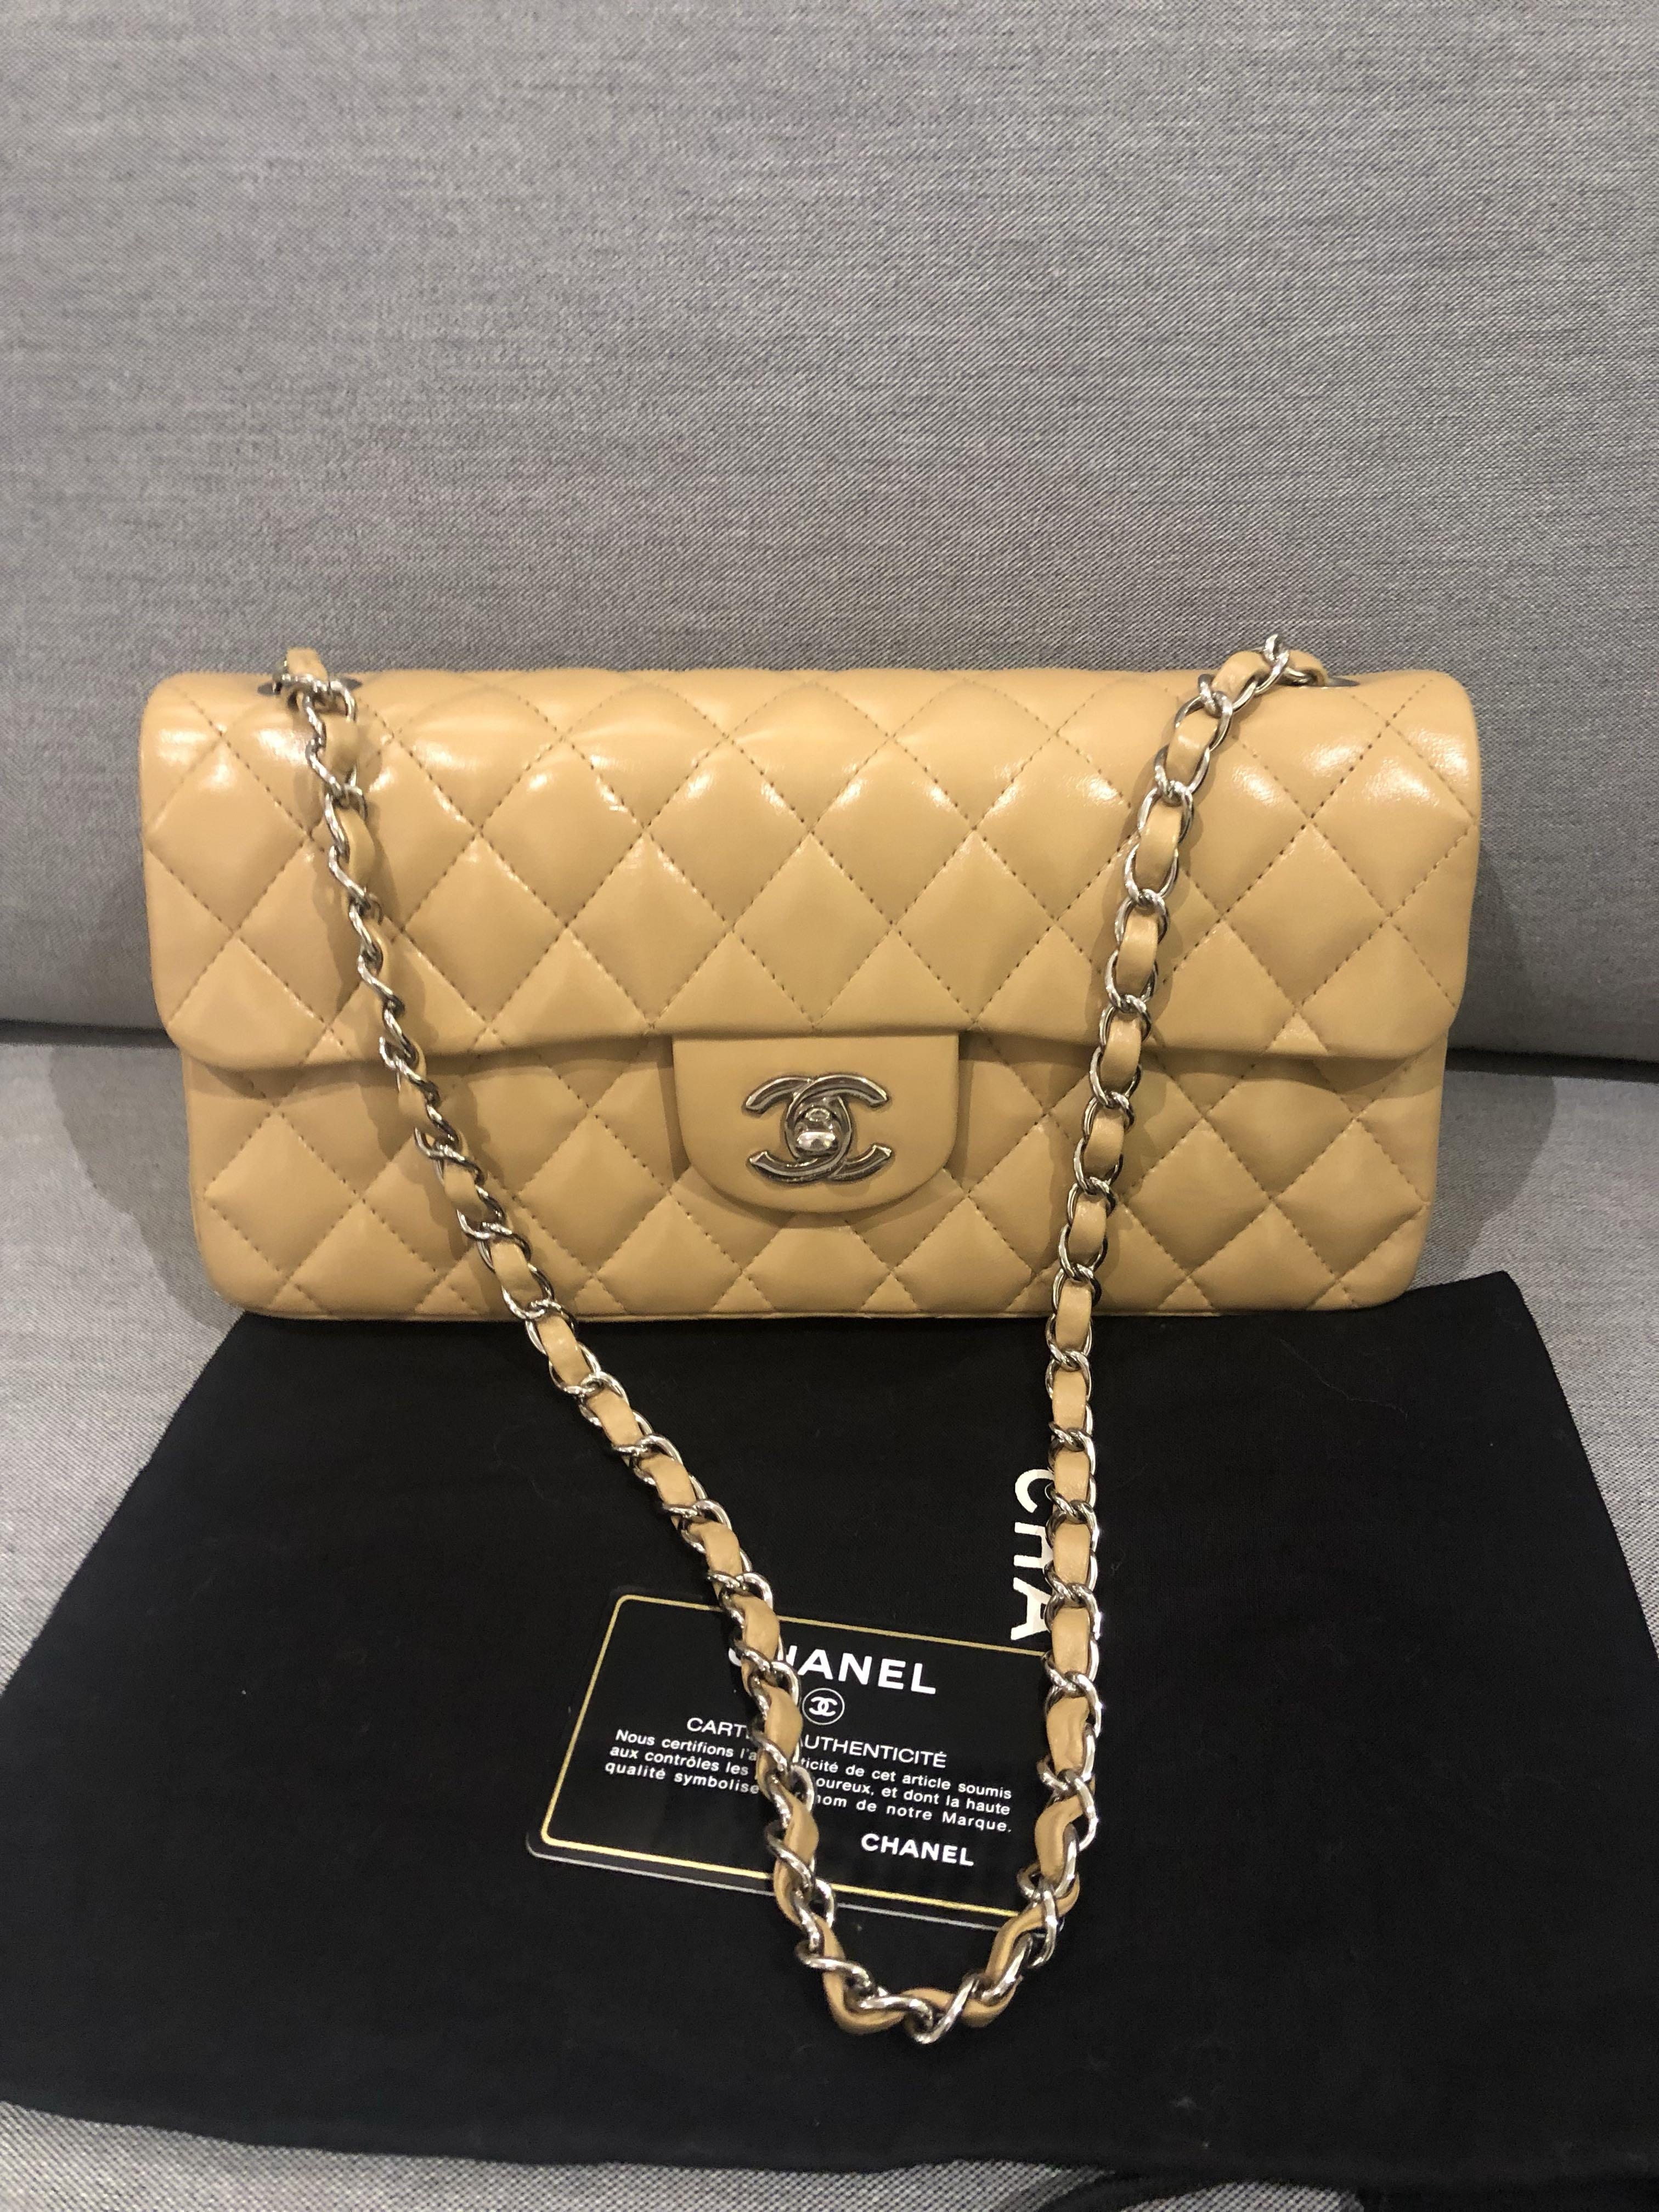 (Fast deal $2300)Authentic Chanel East West Lambskin